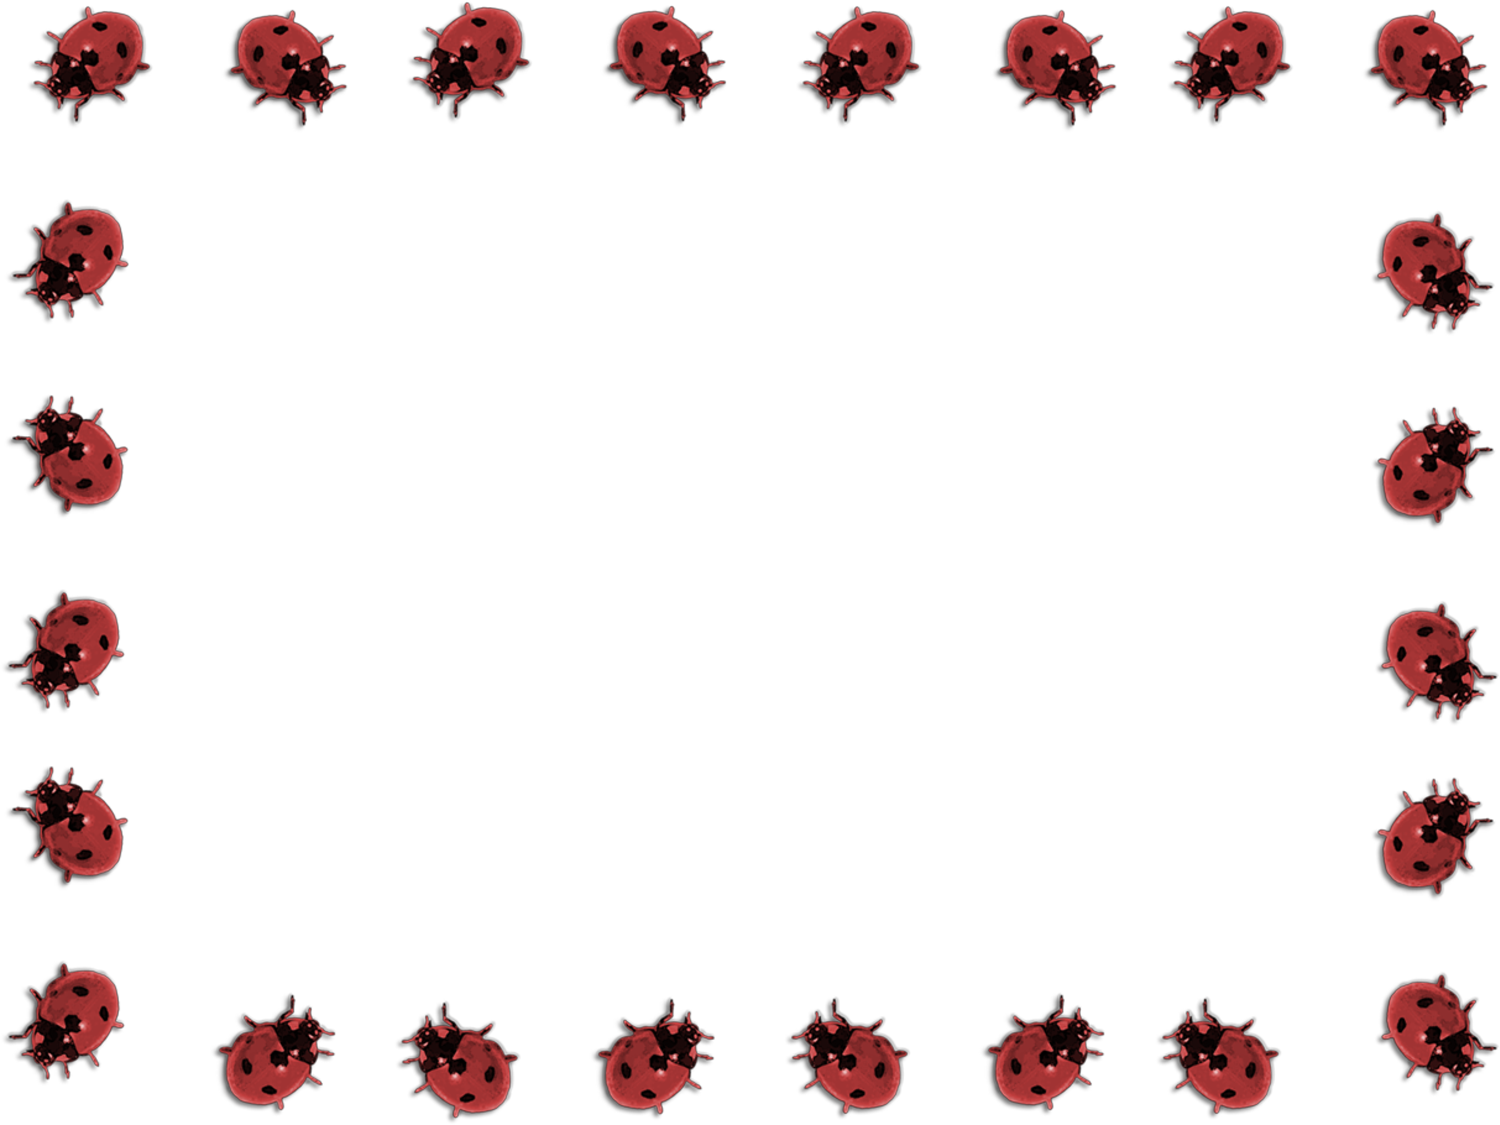 template for a ladybug free powerpoint design template